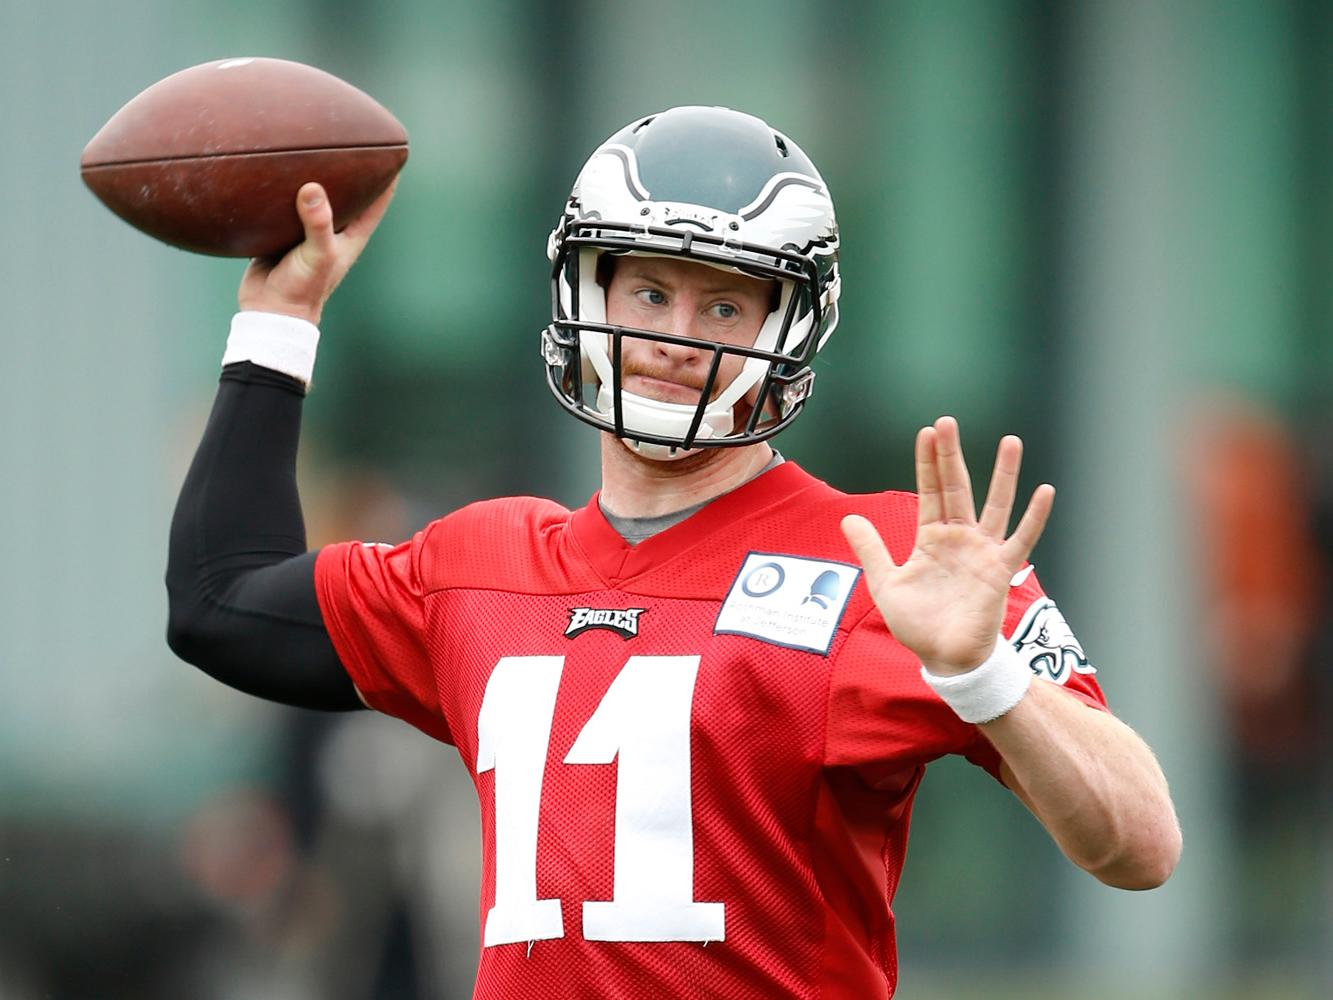 Carson Wentz is turning heads at workouts, and it sounds like Sam Bradford's grip on the starting job is slipping